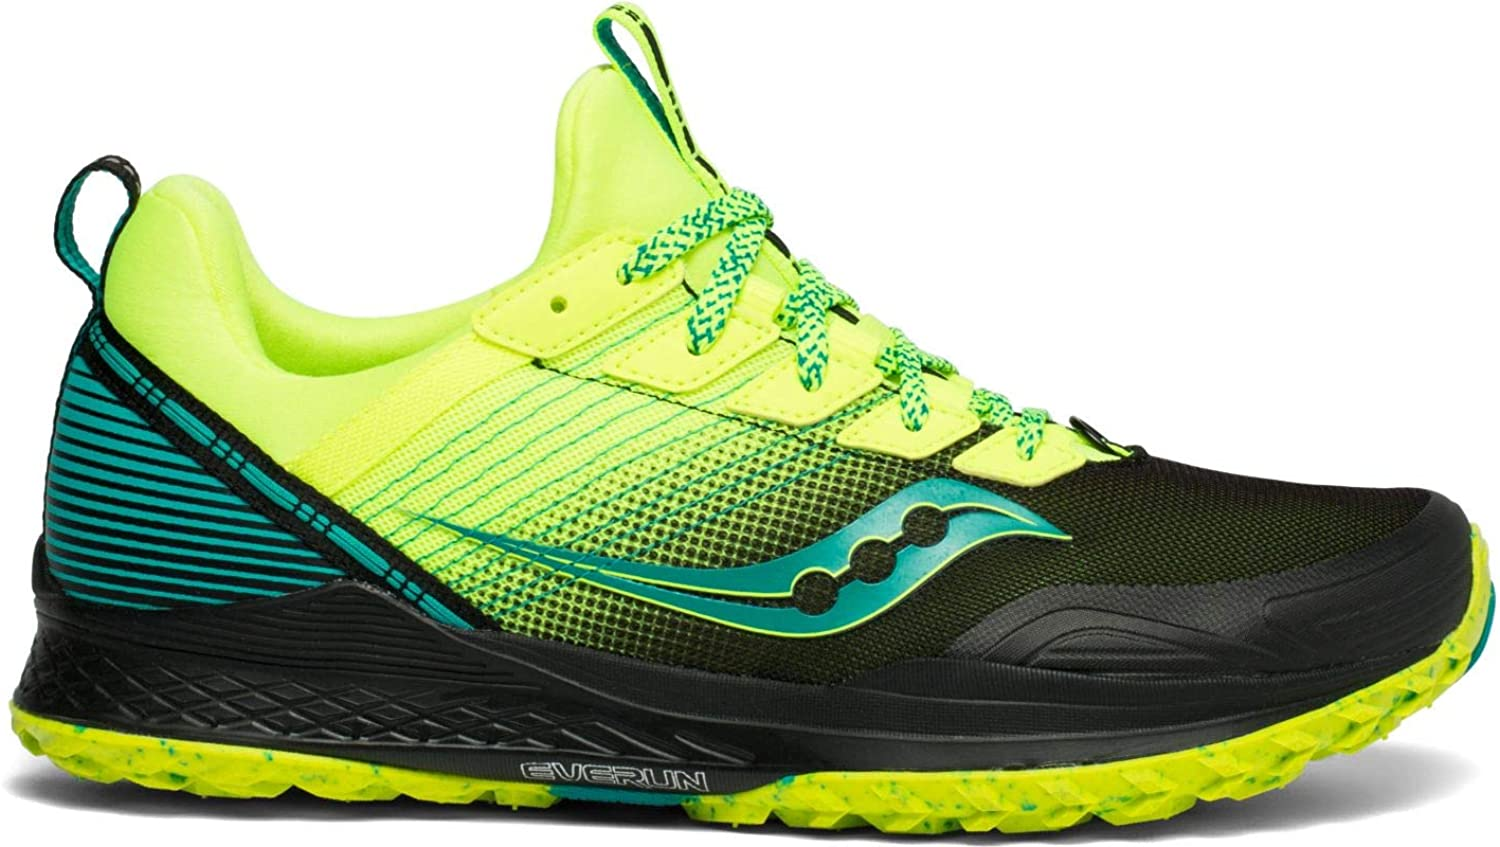 Saucony Mens Mad River TR Trail Running Shoe - Citron/Black - 8